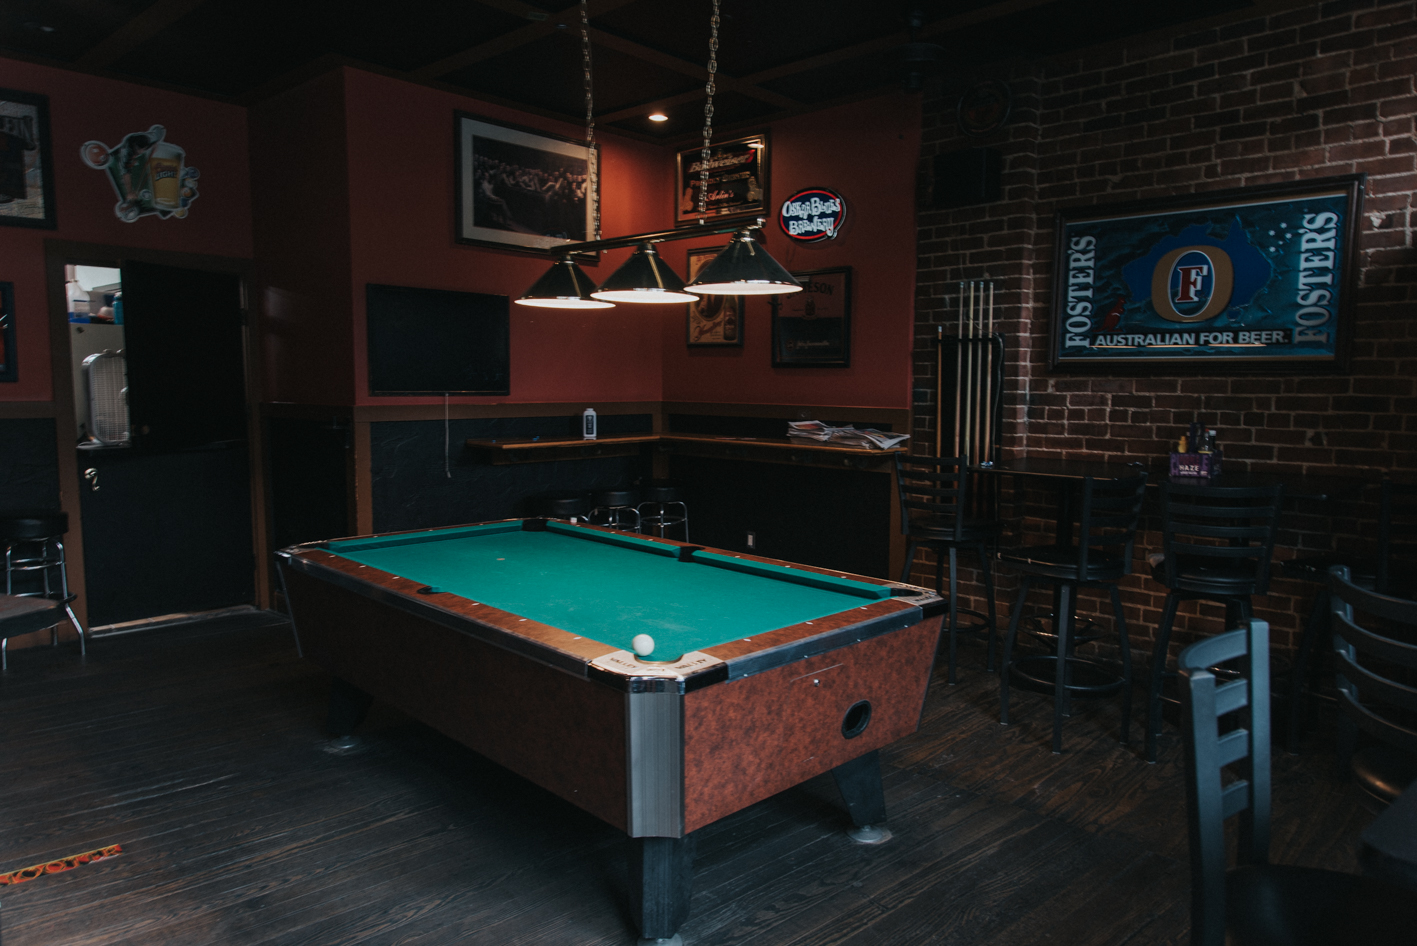 BAR: Arlin's Bar & Restaurant / NEIGHBORHOOD: Clifton / ALLURE: Its low-key sports bar ambiance is complemented by an awesome outdoor space, so it's the best of both worlds. / RECOMMENDED ORDER: Your favorite beer & the Arlin's Reuben / ADDRESS: 307 Ludlow Ave (45220) / IMAGE: Brianna Long // PUBLISHED 7.1.17